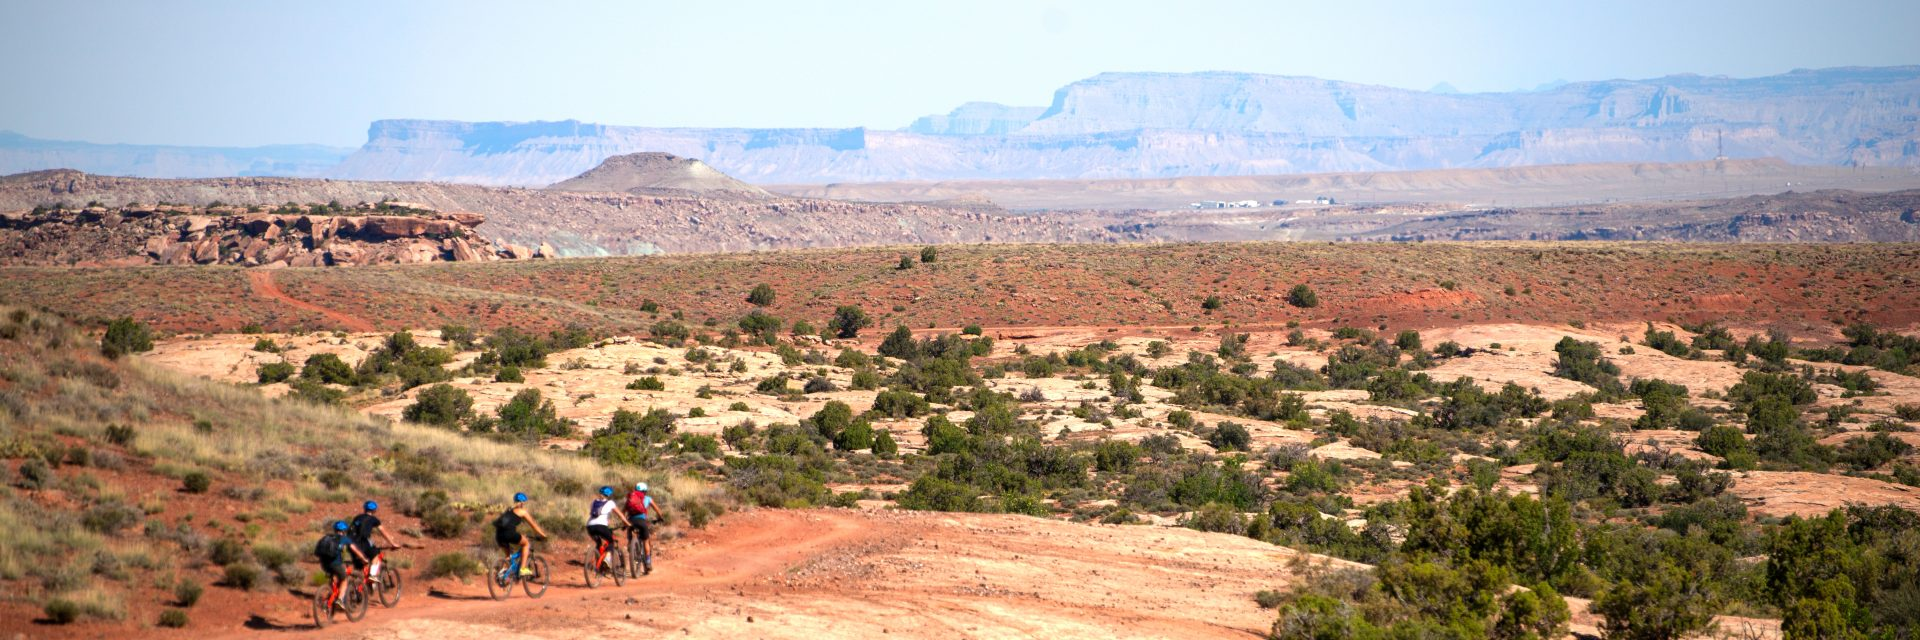 A group of mountain bikers follow their guide around the backside of Courthouse Loop with the Book Cliffs in the distance